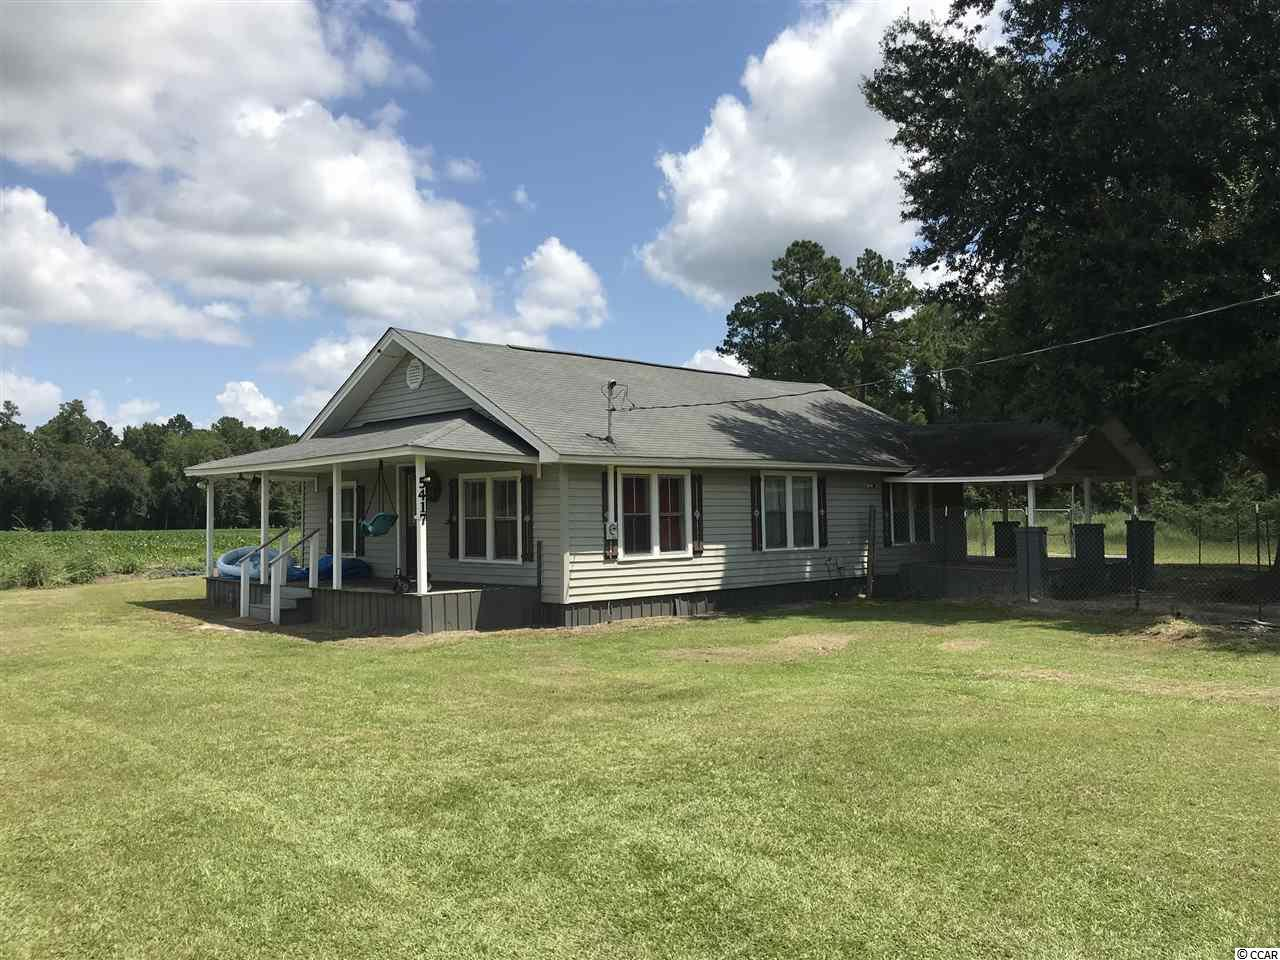 Cheaper house at Myrtle Beach